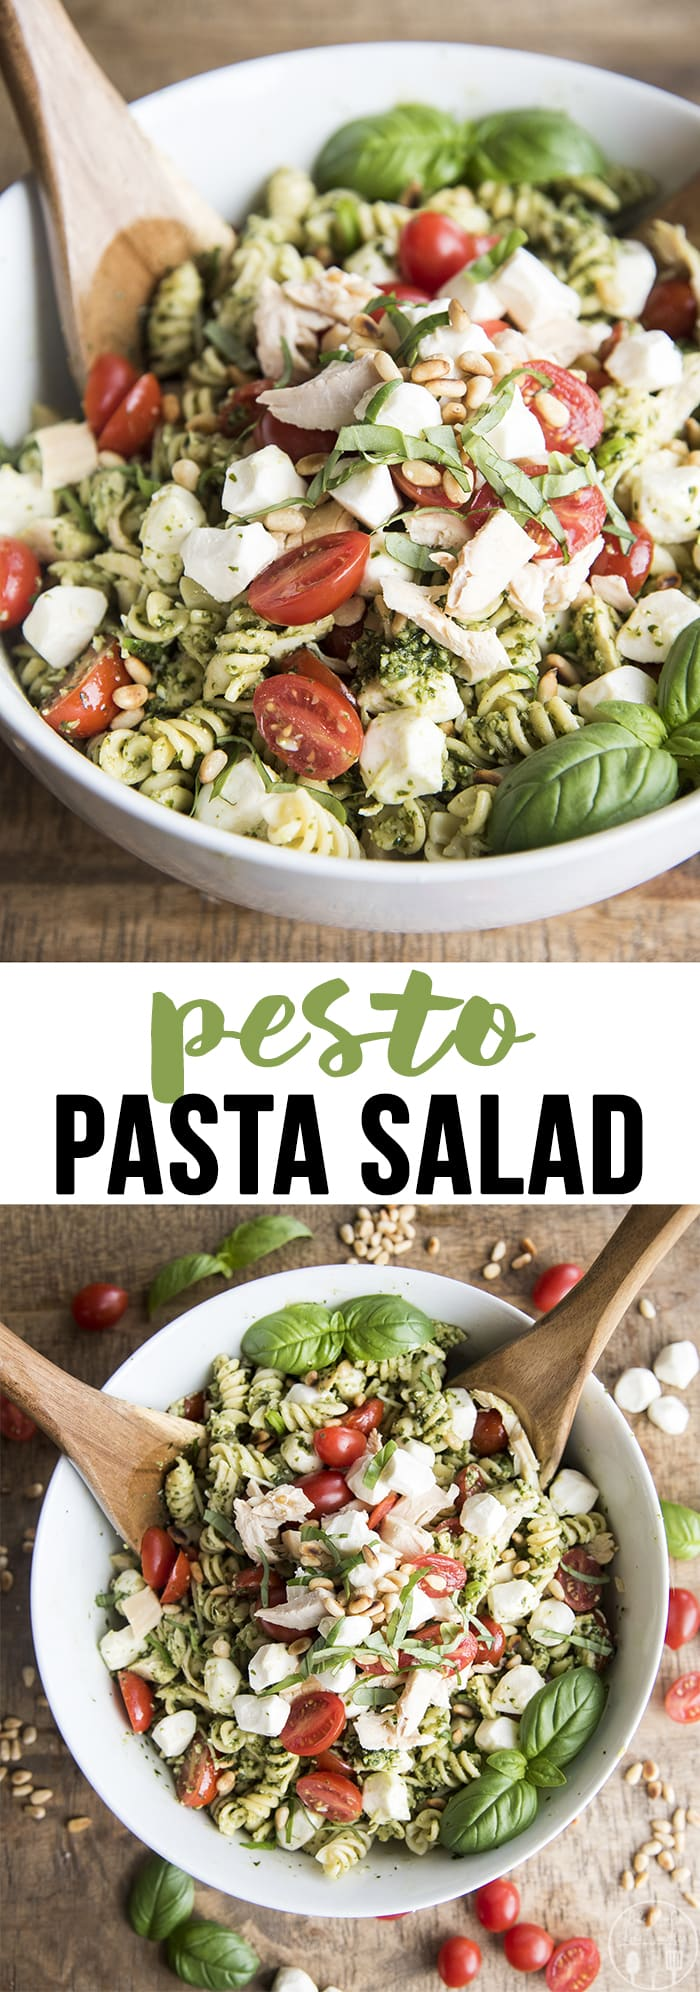 Pesto Pasta Salad is a delicious and fresh summer side dish, full of chicken, tomatoes, mozzarella, and covered in a fresh basil pesto! Perfect for a summer potluck!